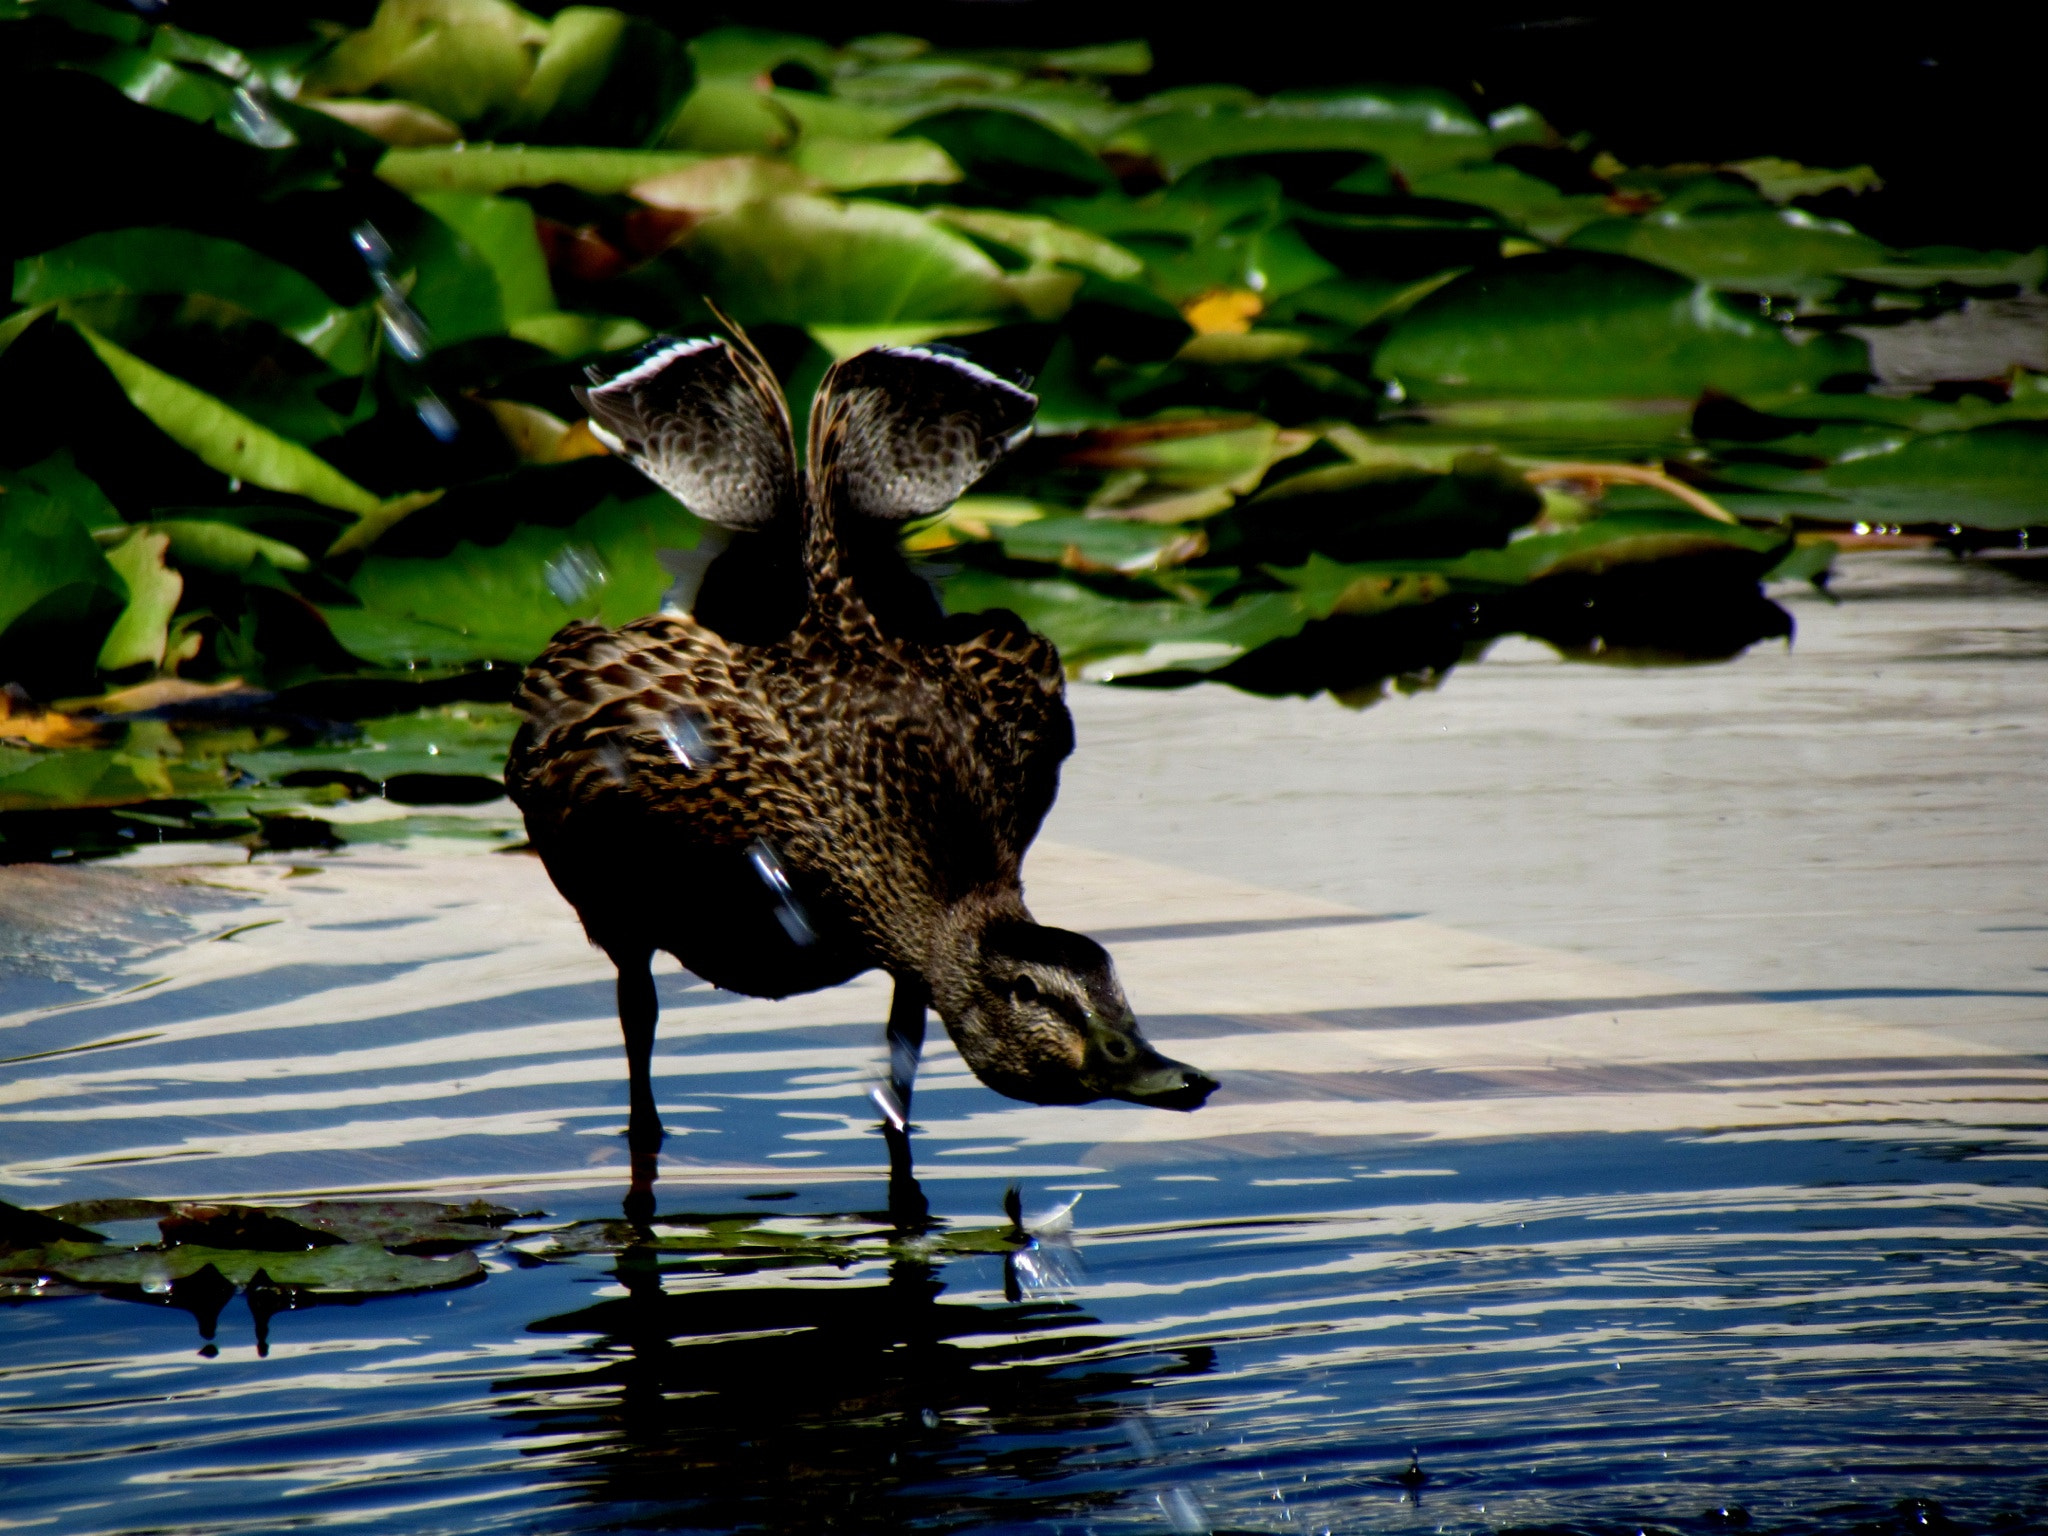 Photograph Duck by Laura Treglia on 500px